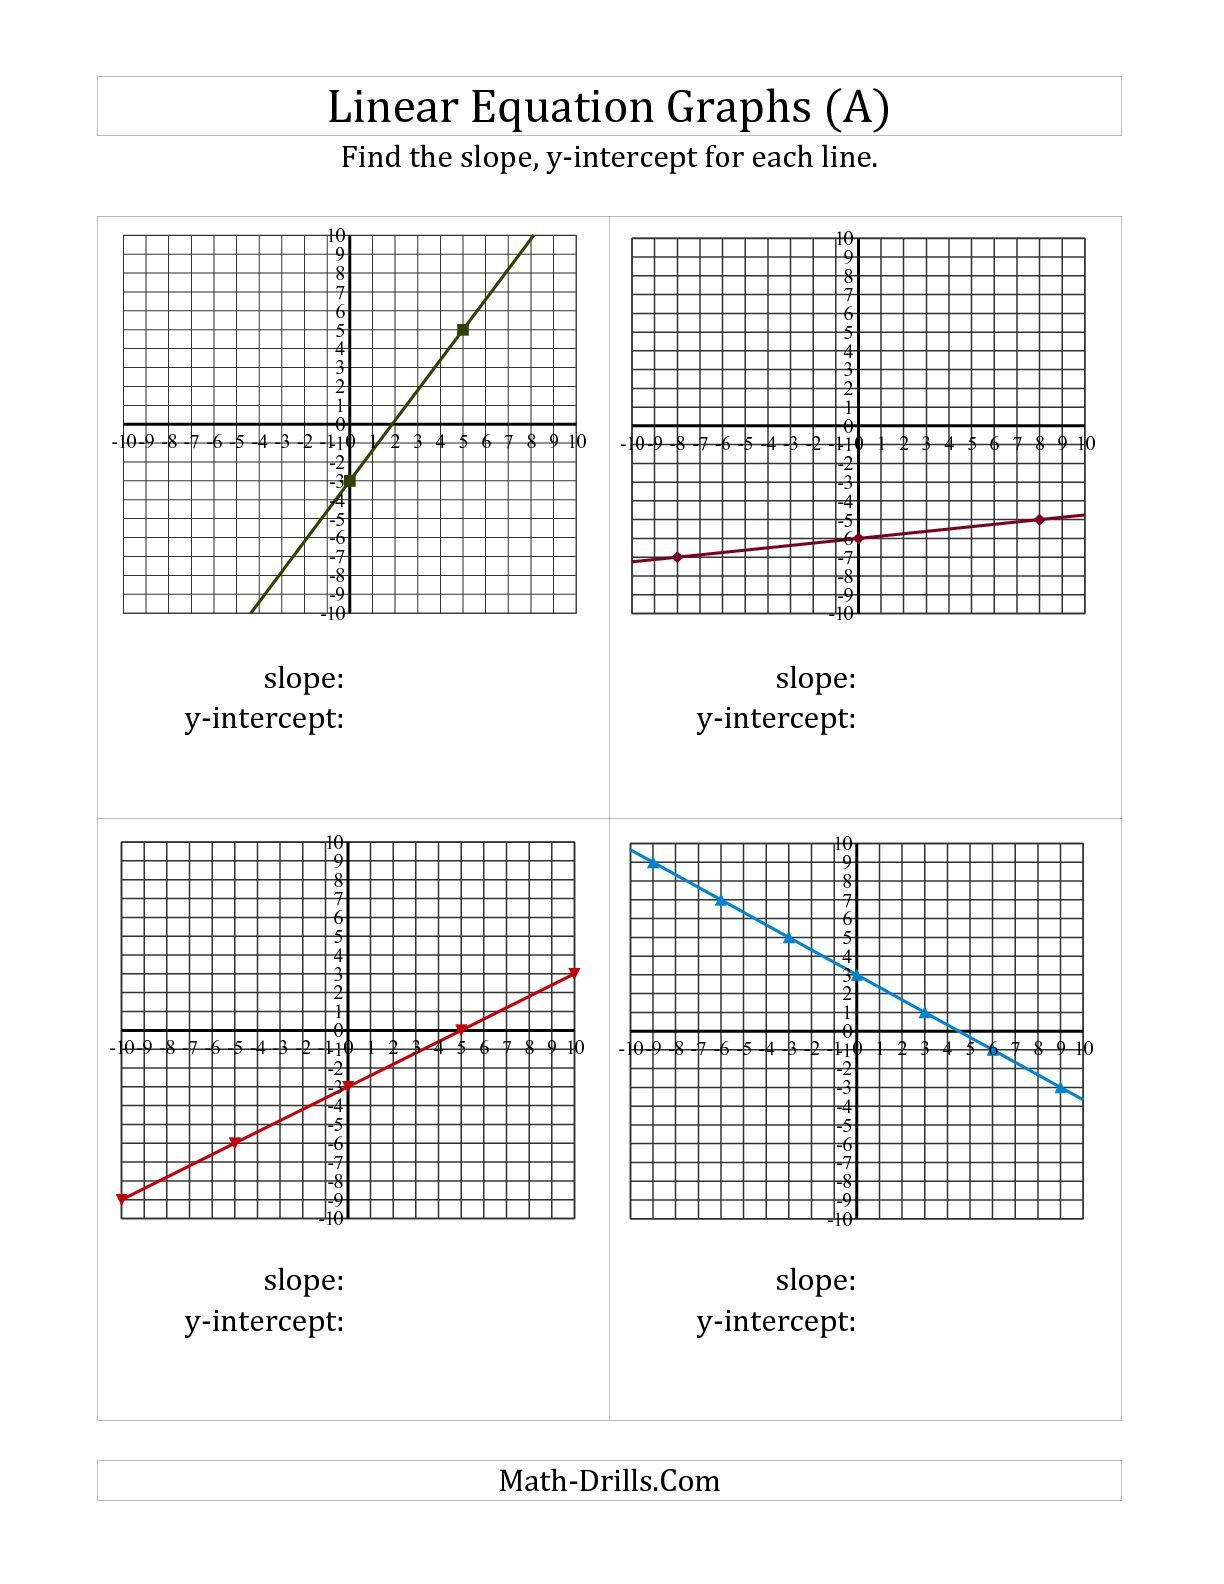 Graphing Linear Functions Worksheet the Finding Slope and Y Intercept From A Linear Equation